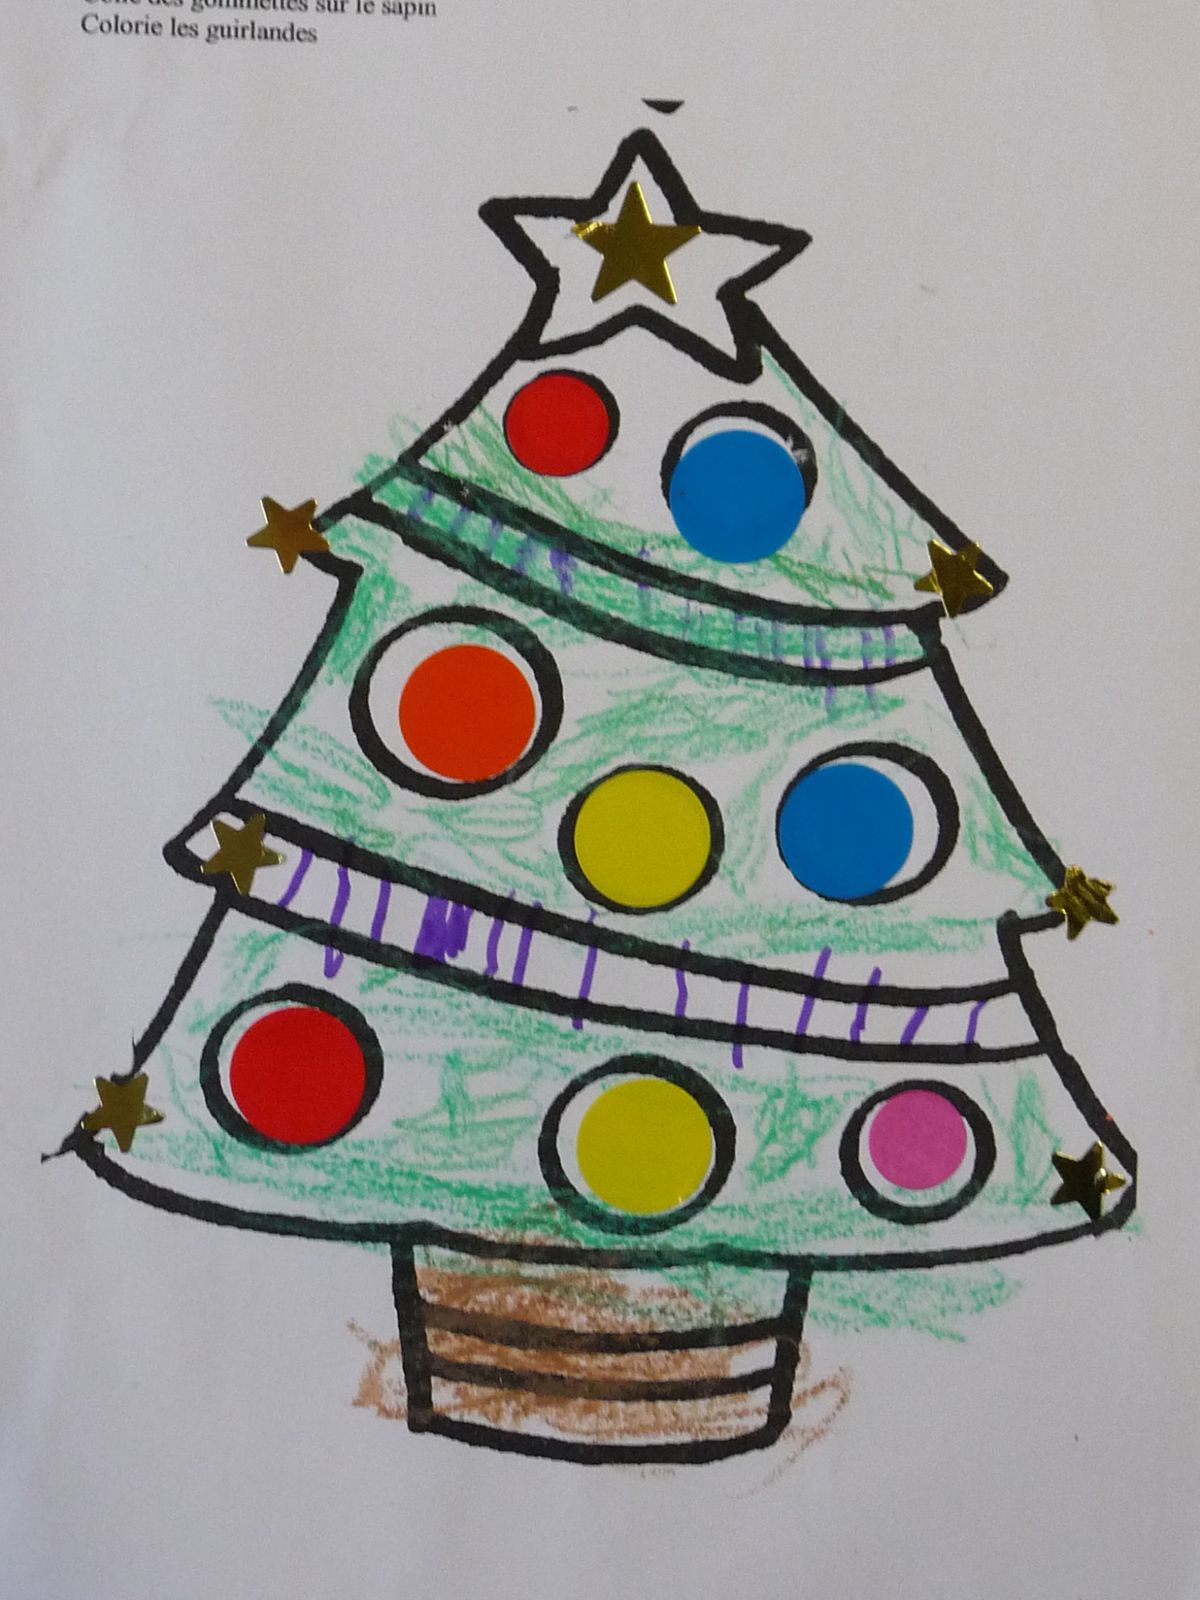 Coloriage Sapin Chez Camille